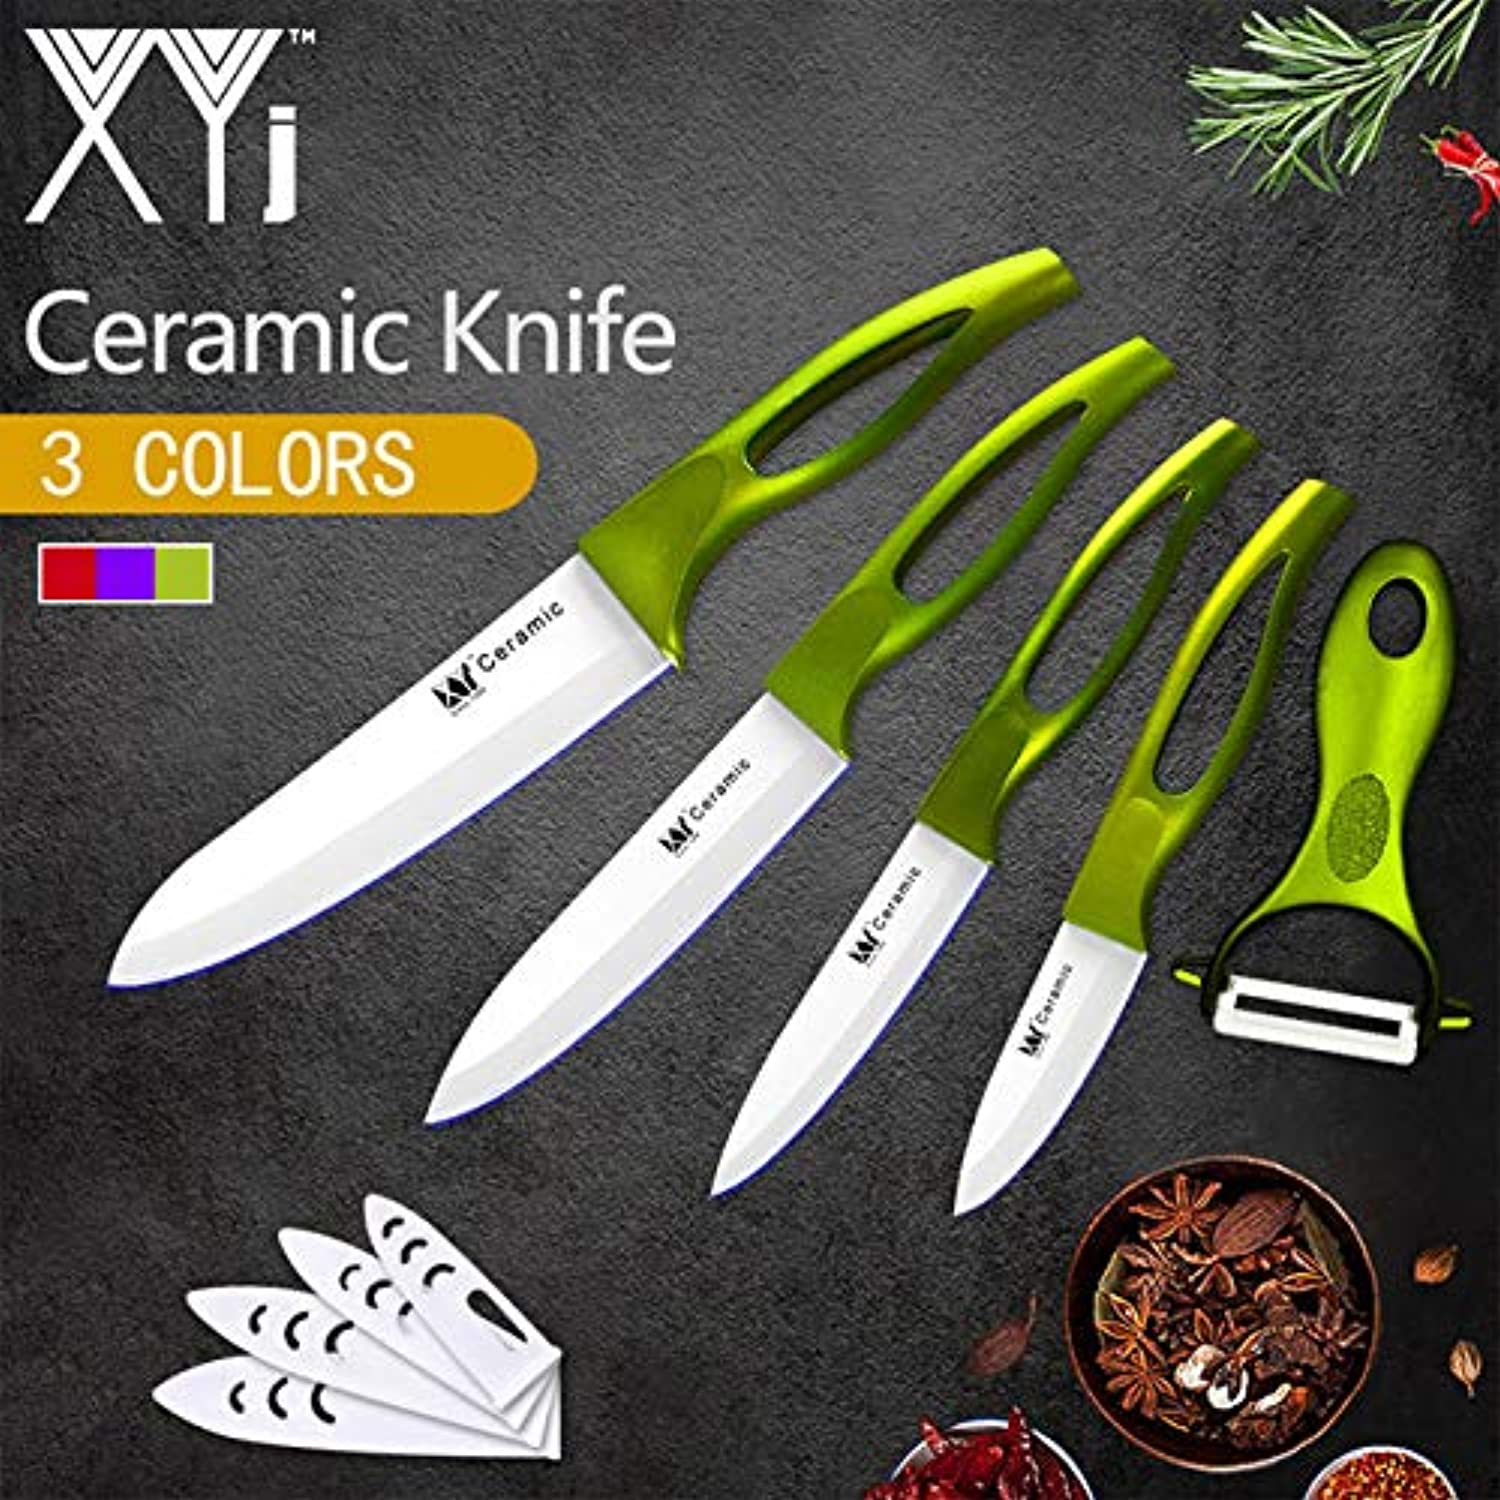 XYj 5 Piece Ceramic Knives Flower Pattern Blade 3 4 5 6 inch ABS+TPR Handle Kitchen Knives Cooking Tool Free Cover and Pleeler   Green H White Blade